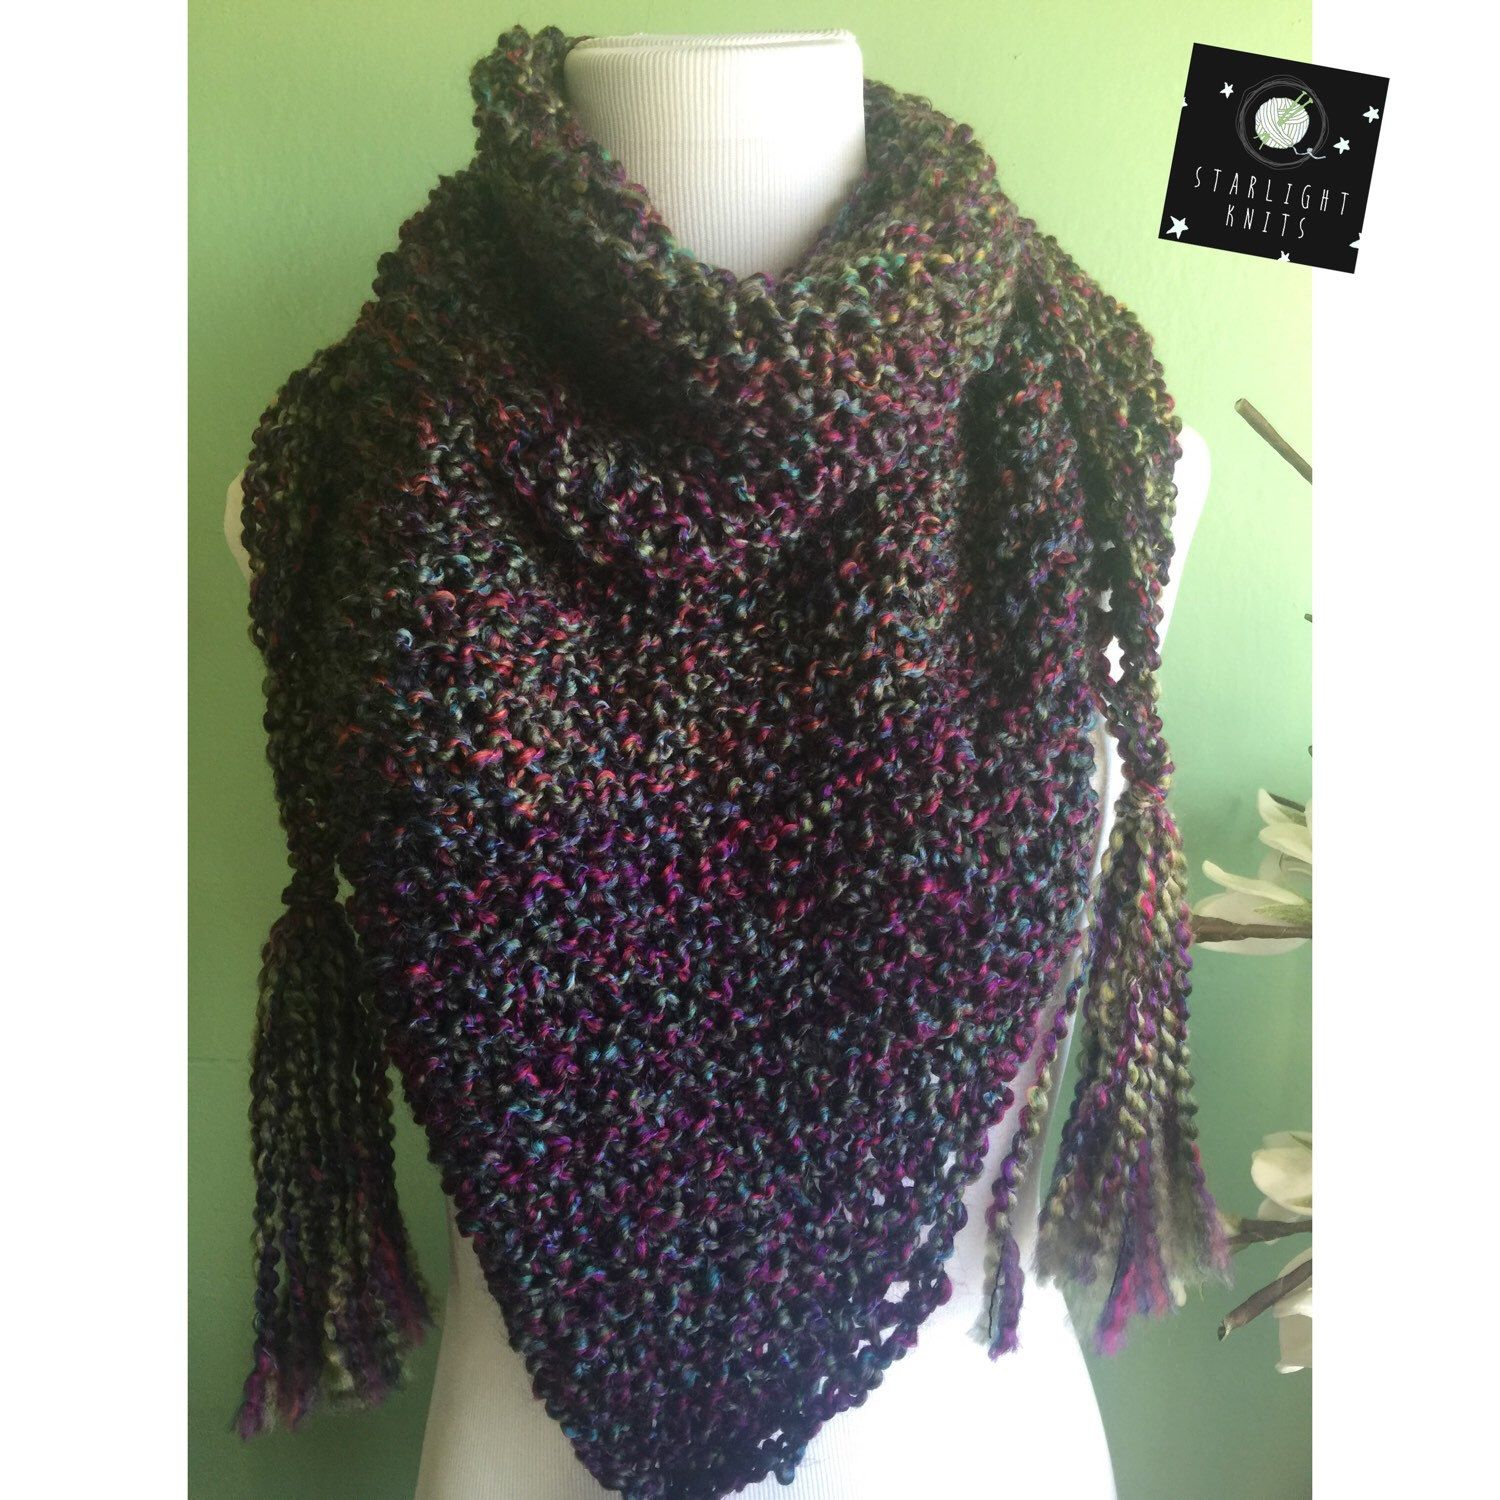 Busy making new Outlander Inspired Shawls in gorgeous new shades!